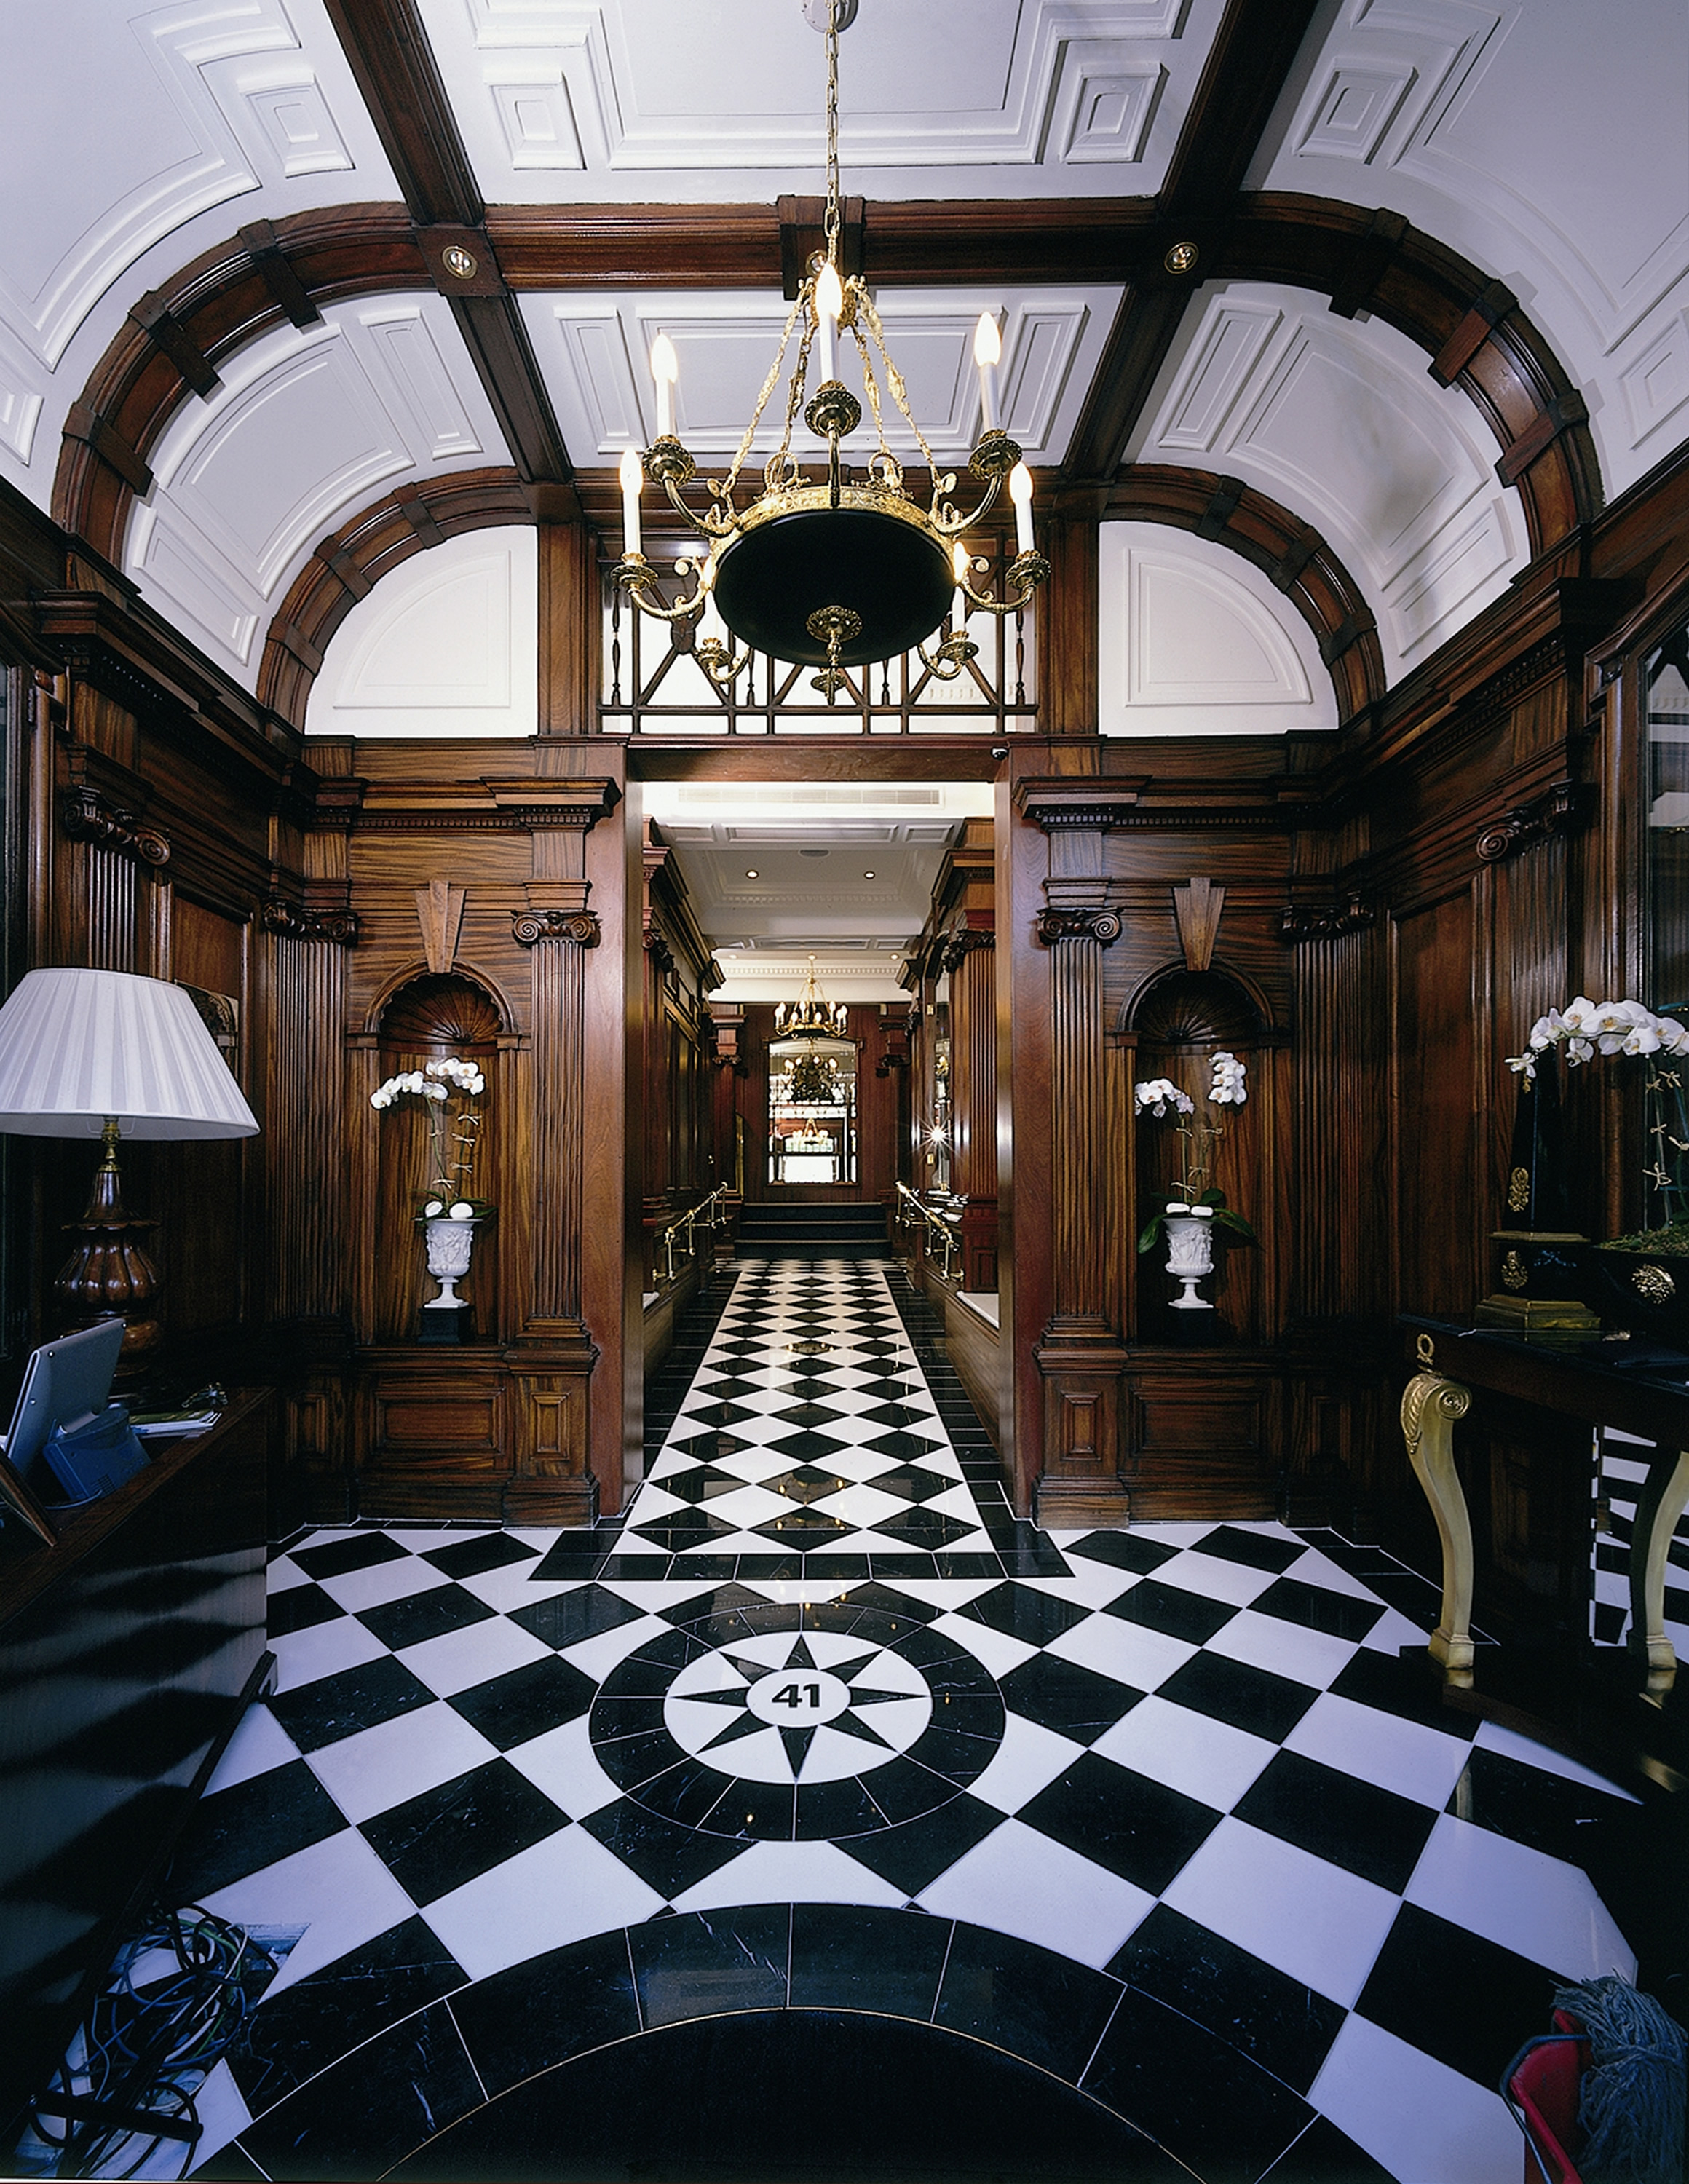 Hotels insolites et sympa à Londres – Lost in London